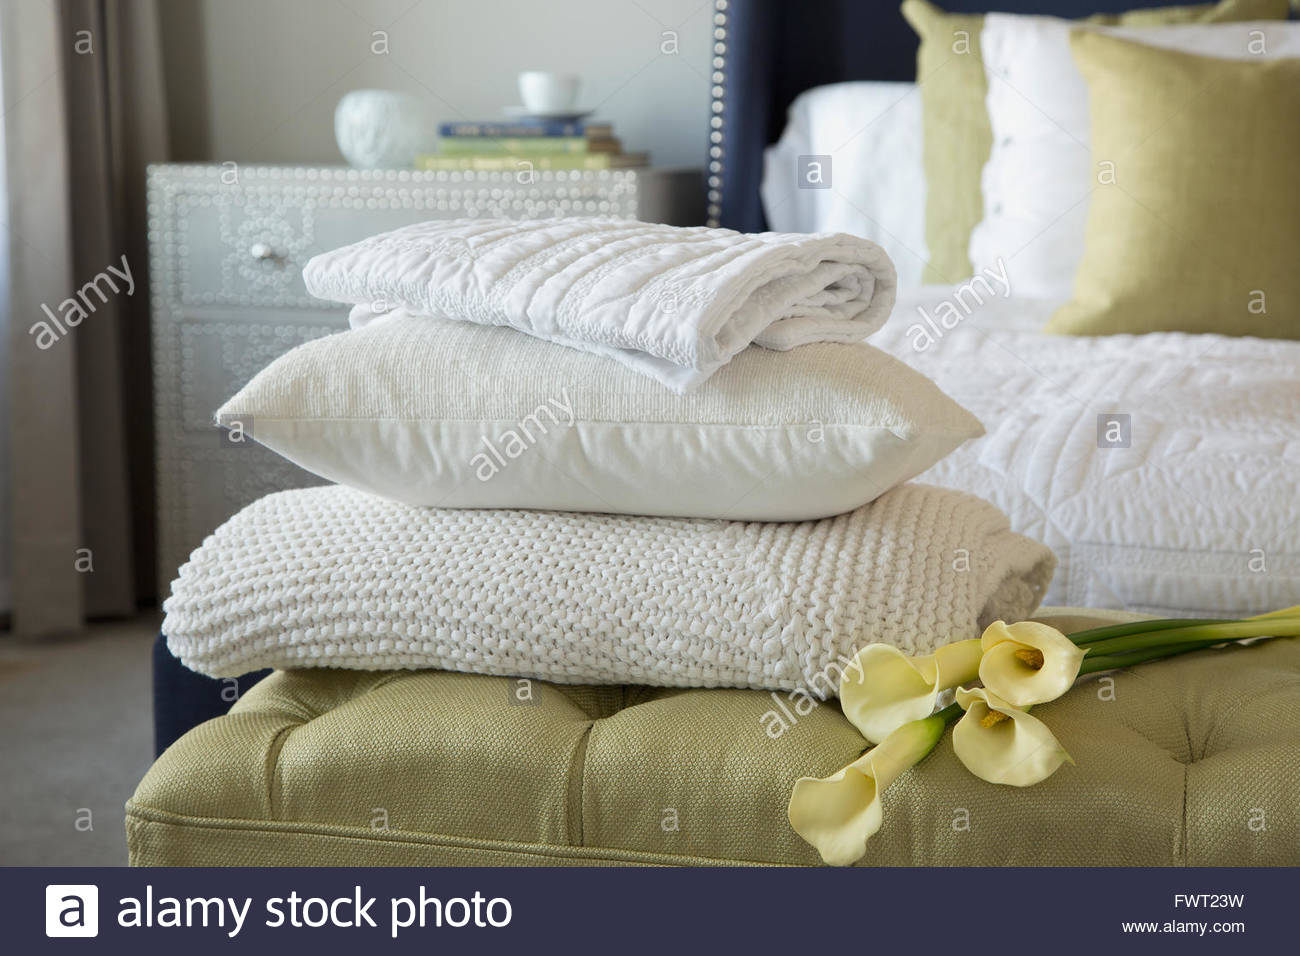 Pillow, blankets and lilies on footstool in bedroom - Stock Image